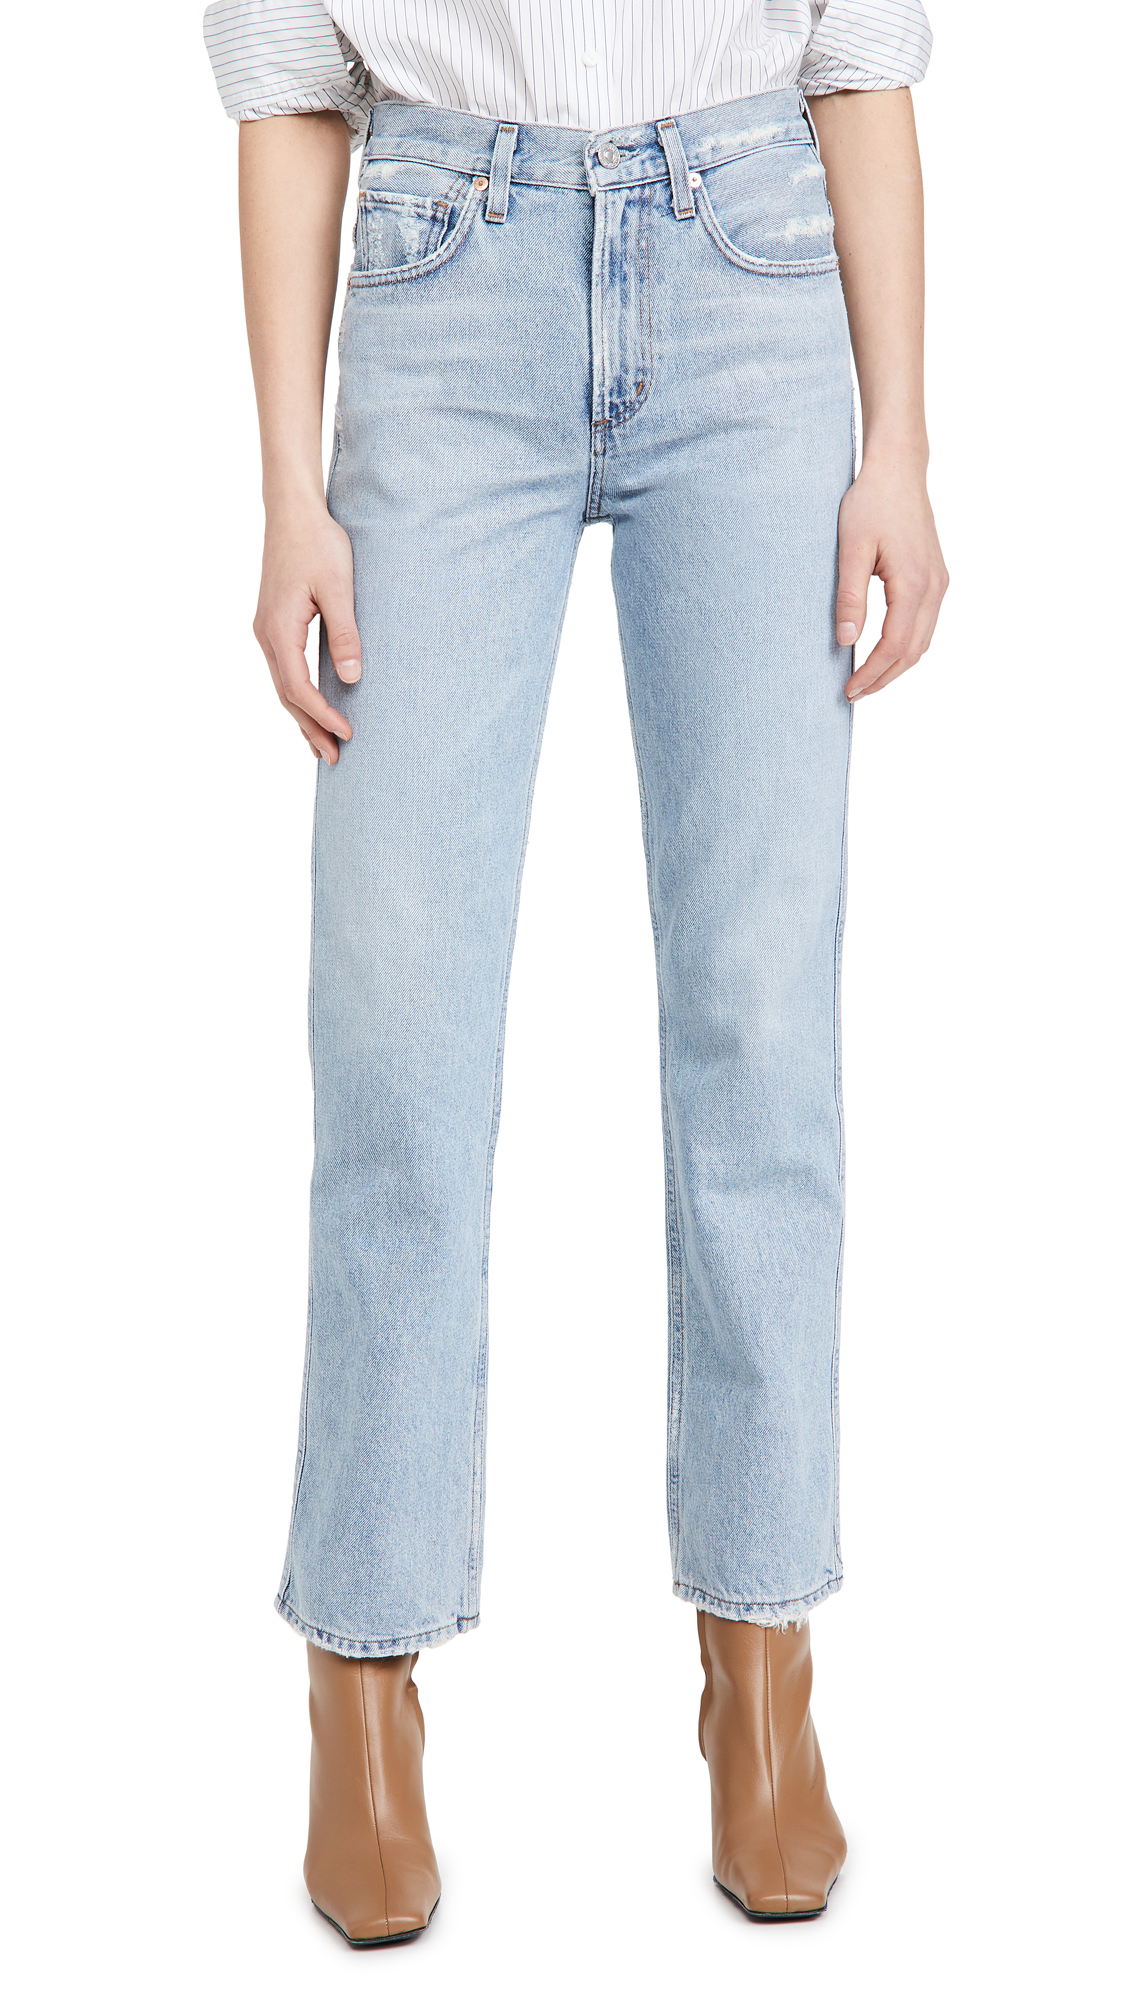 Citizens of Humanity Daphne High Rise Stovepipe Jeans